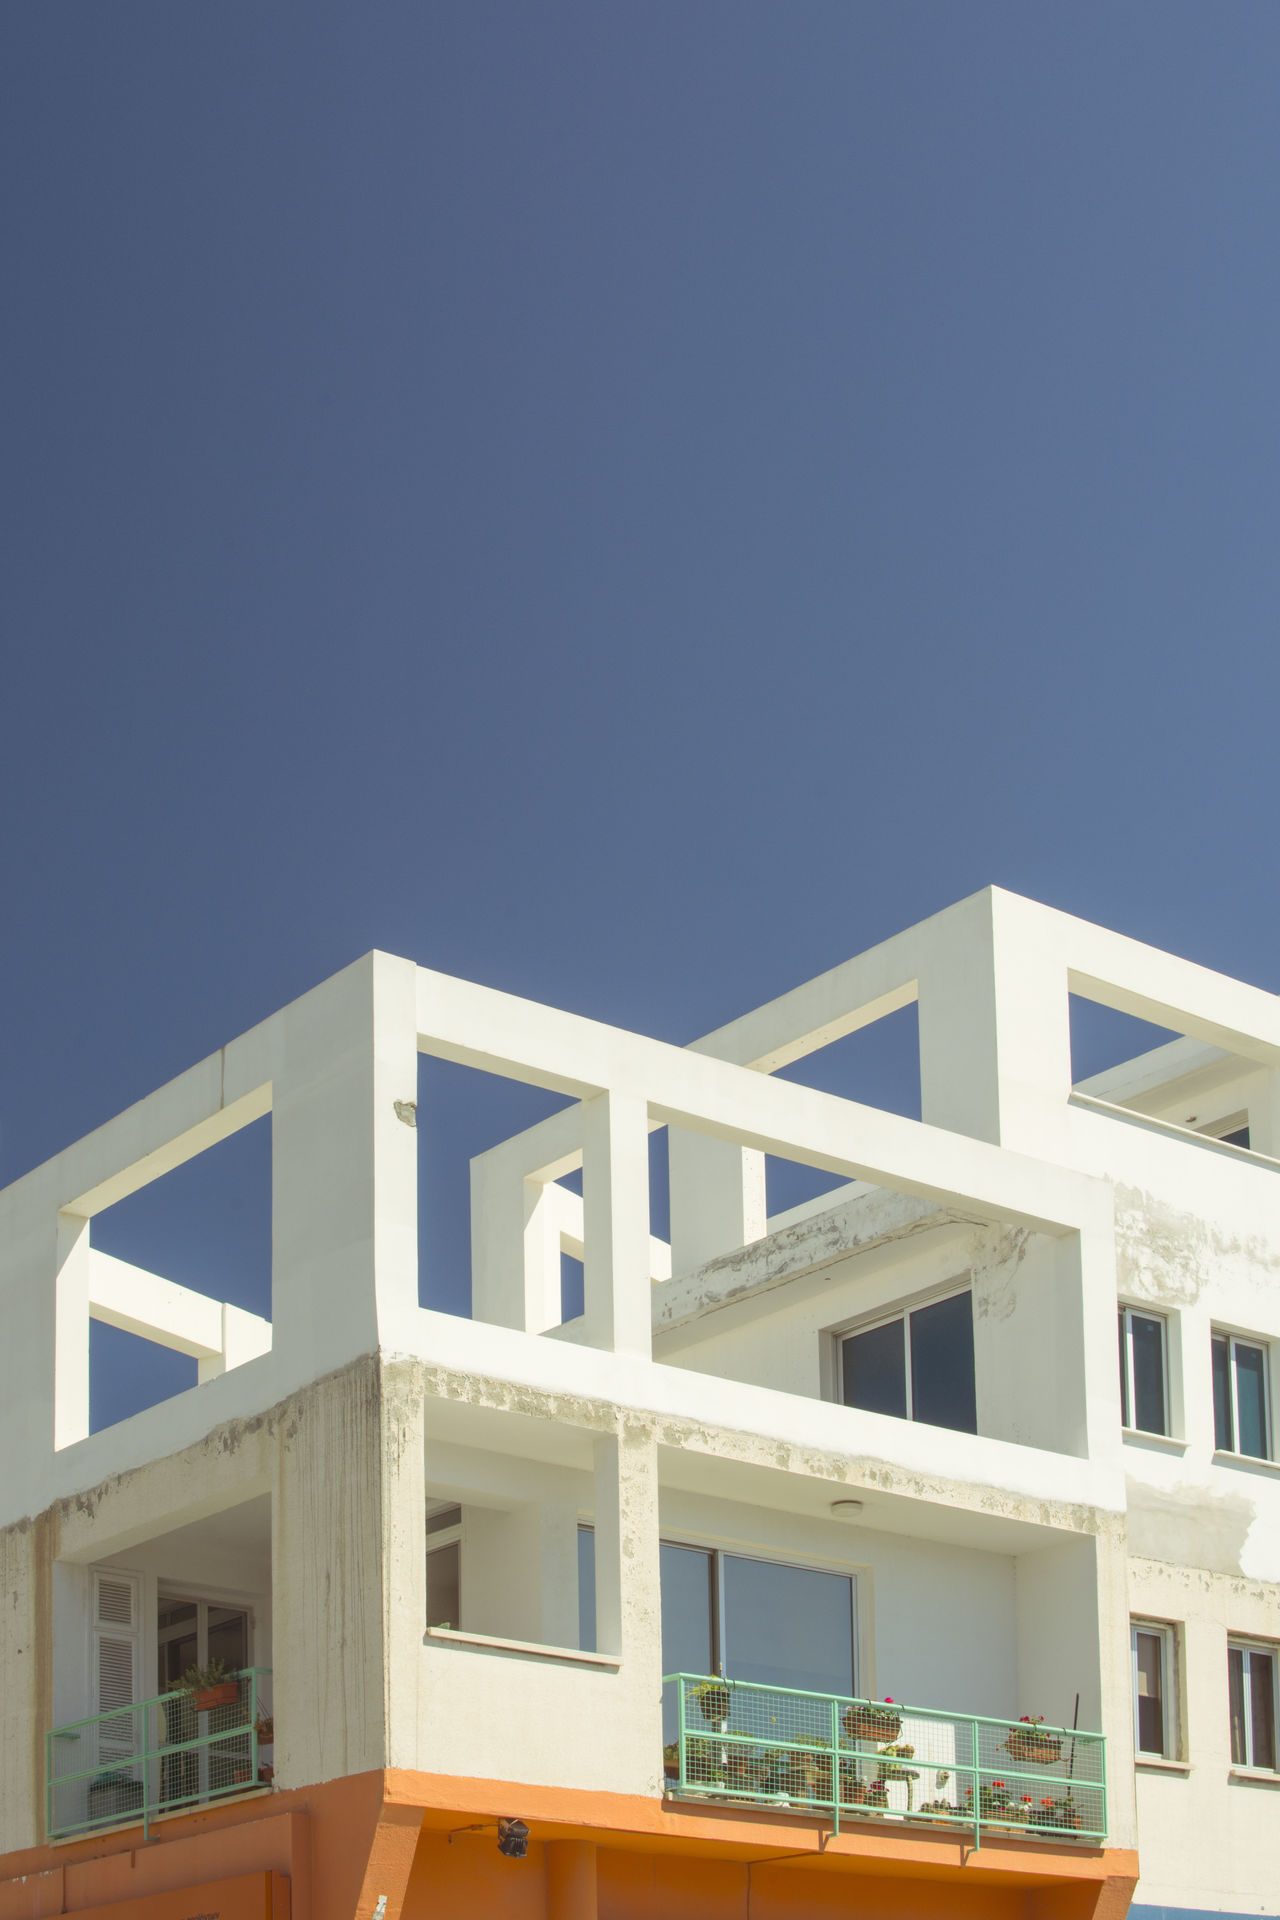 Living House. Cyprus Architecture Blue Bright Colors Building Exterior Built Structure Clear Sky Cyprus Day Empty Space Geometry Instagram Low Angle View Minimal Minimalistic Modern No People Outdoor Photography Outdoors Sky The Architect - 2017 EyeEm Awards White Color